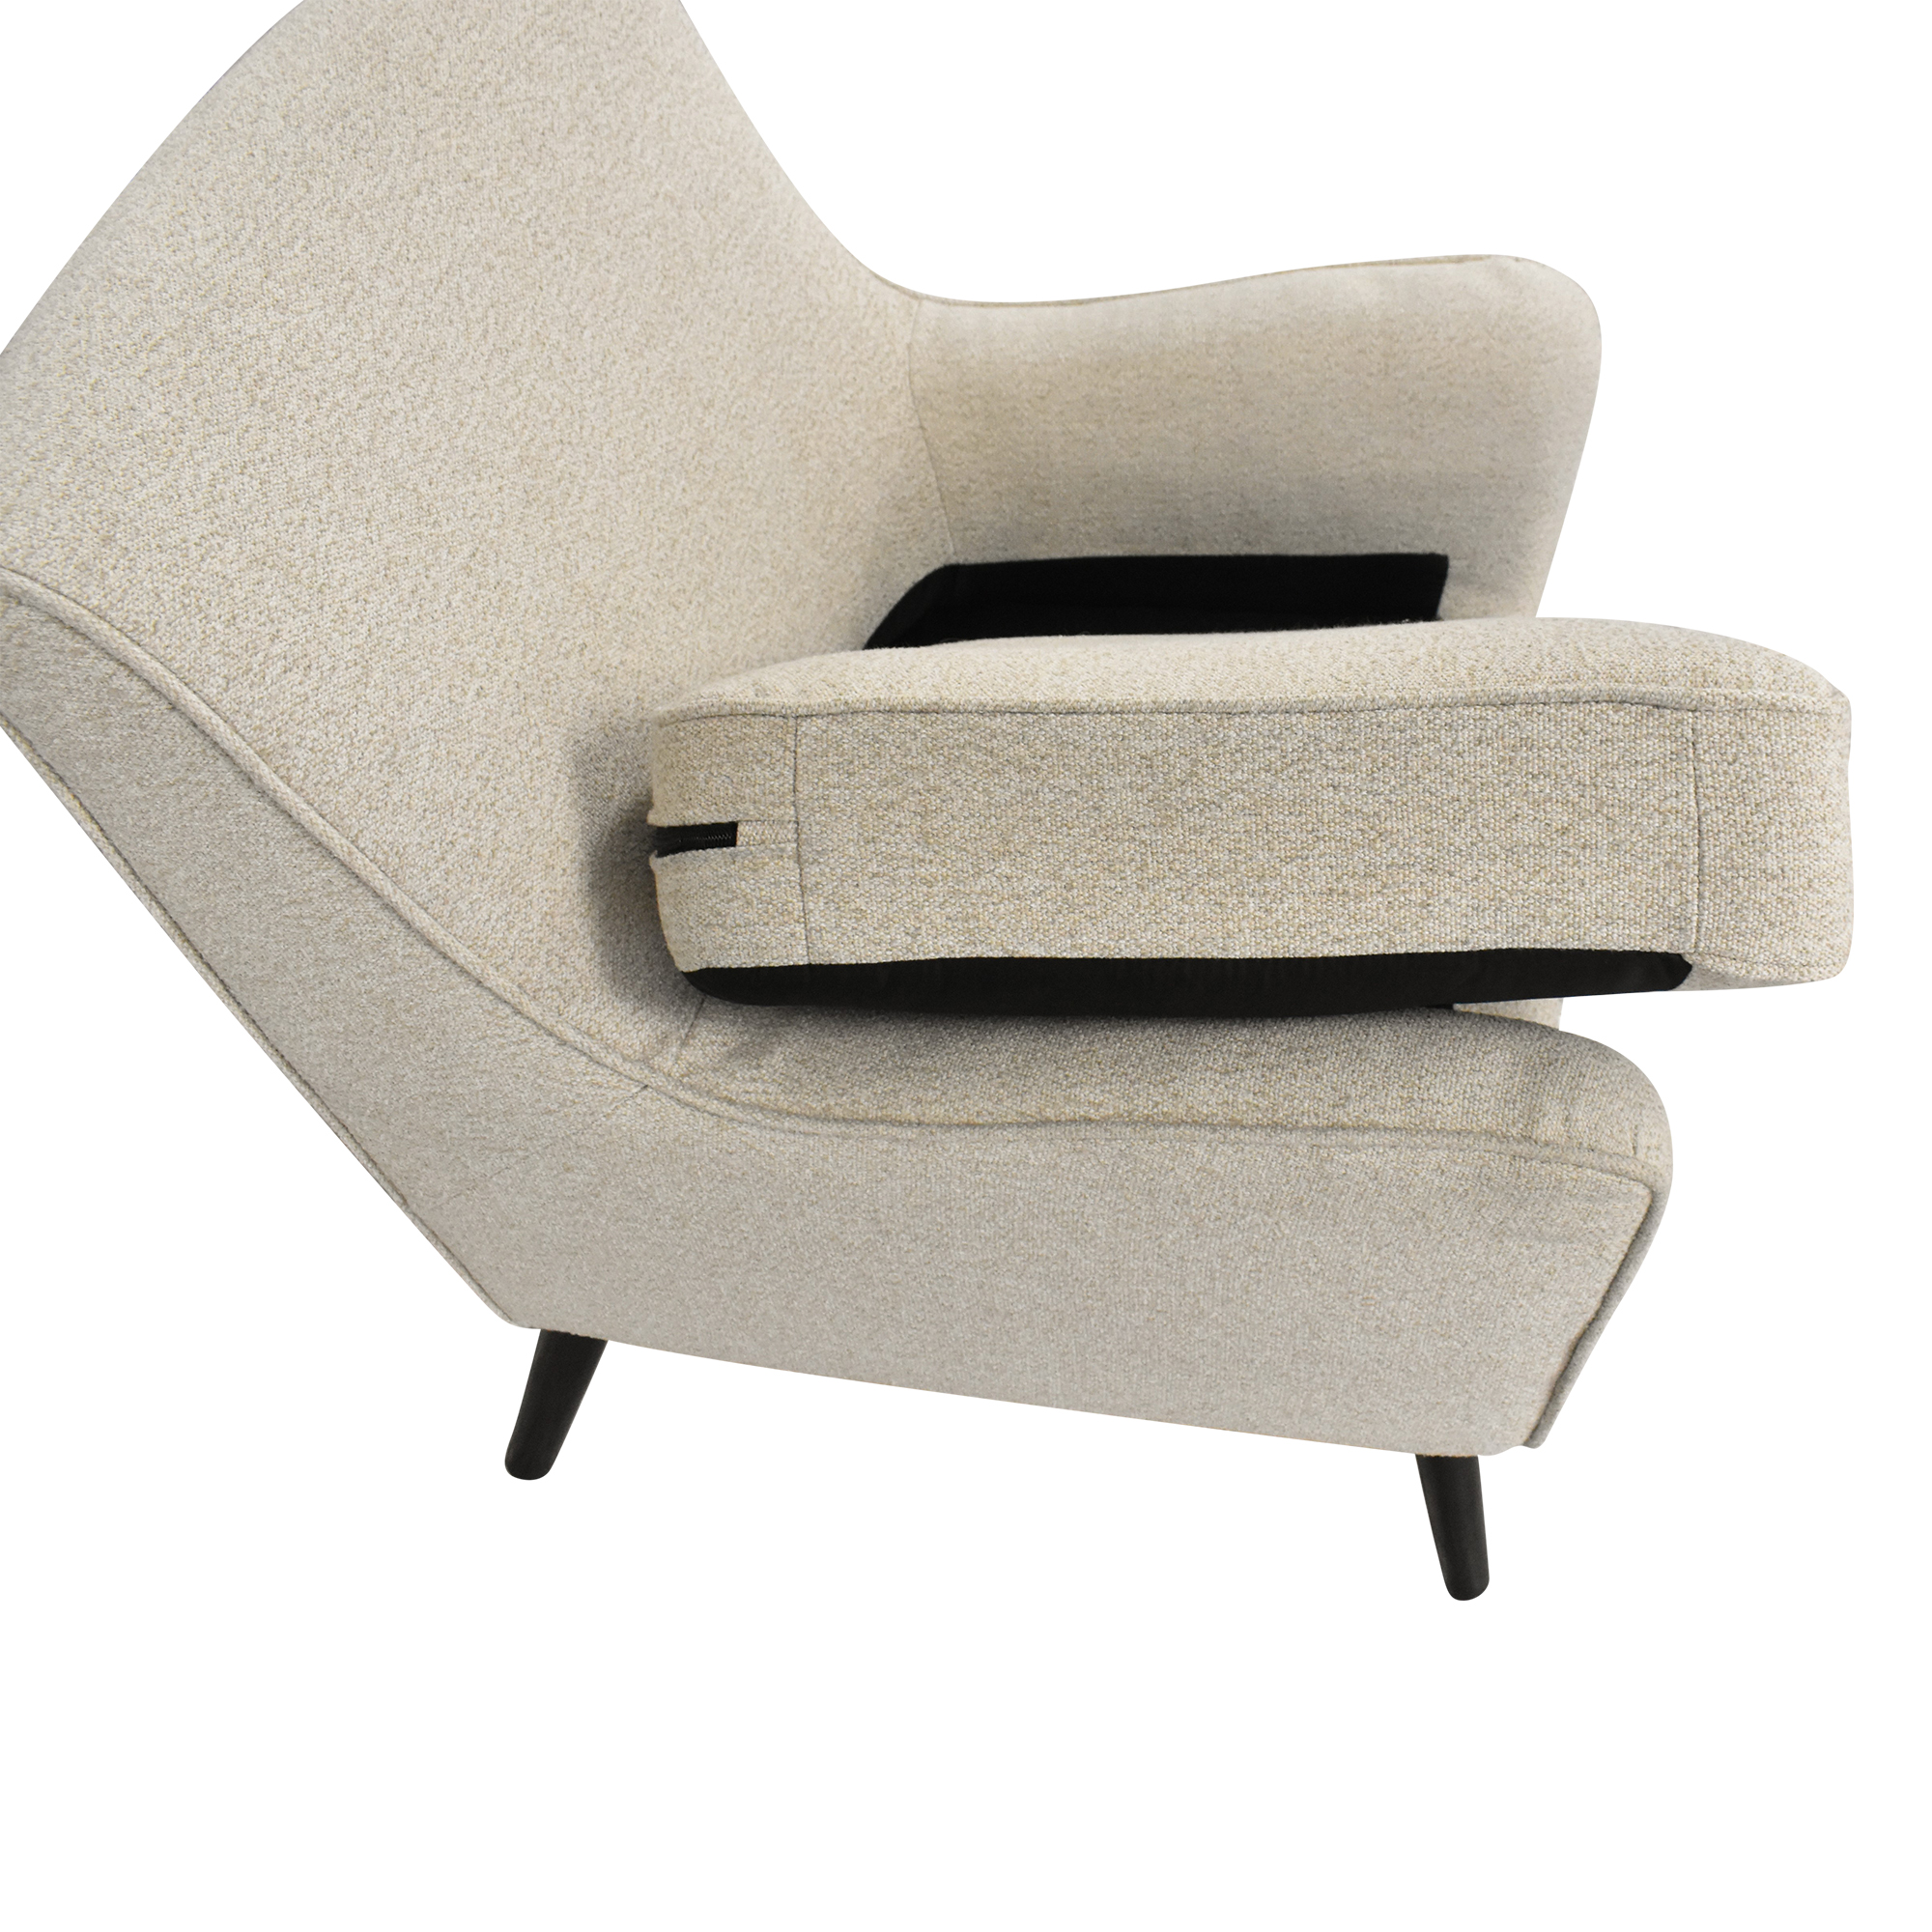 West Elm West Elm Book Nook Armchair